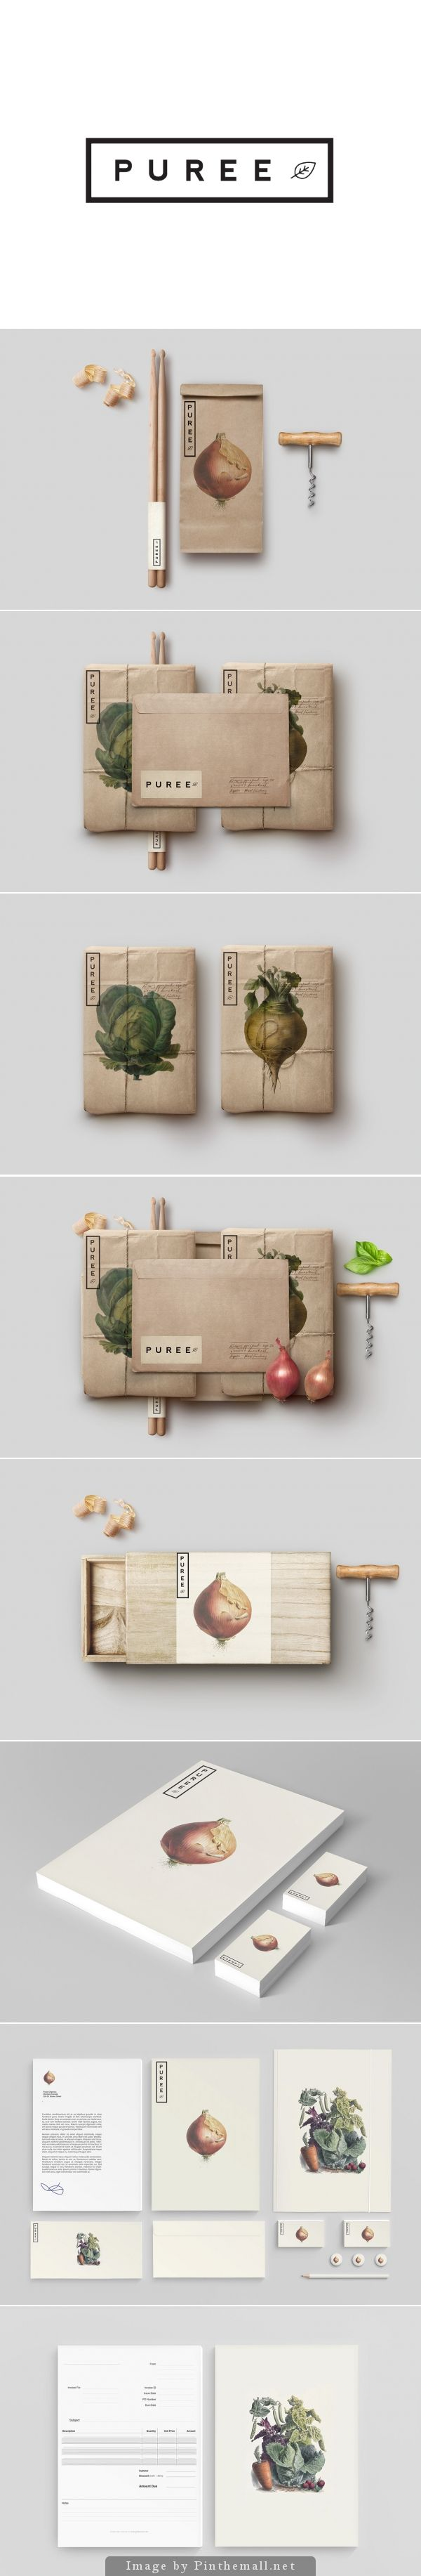 Puree Organics by Studioahamed - I love the antique-style botanical illustrations and brown paper #packaging